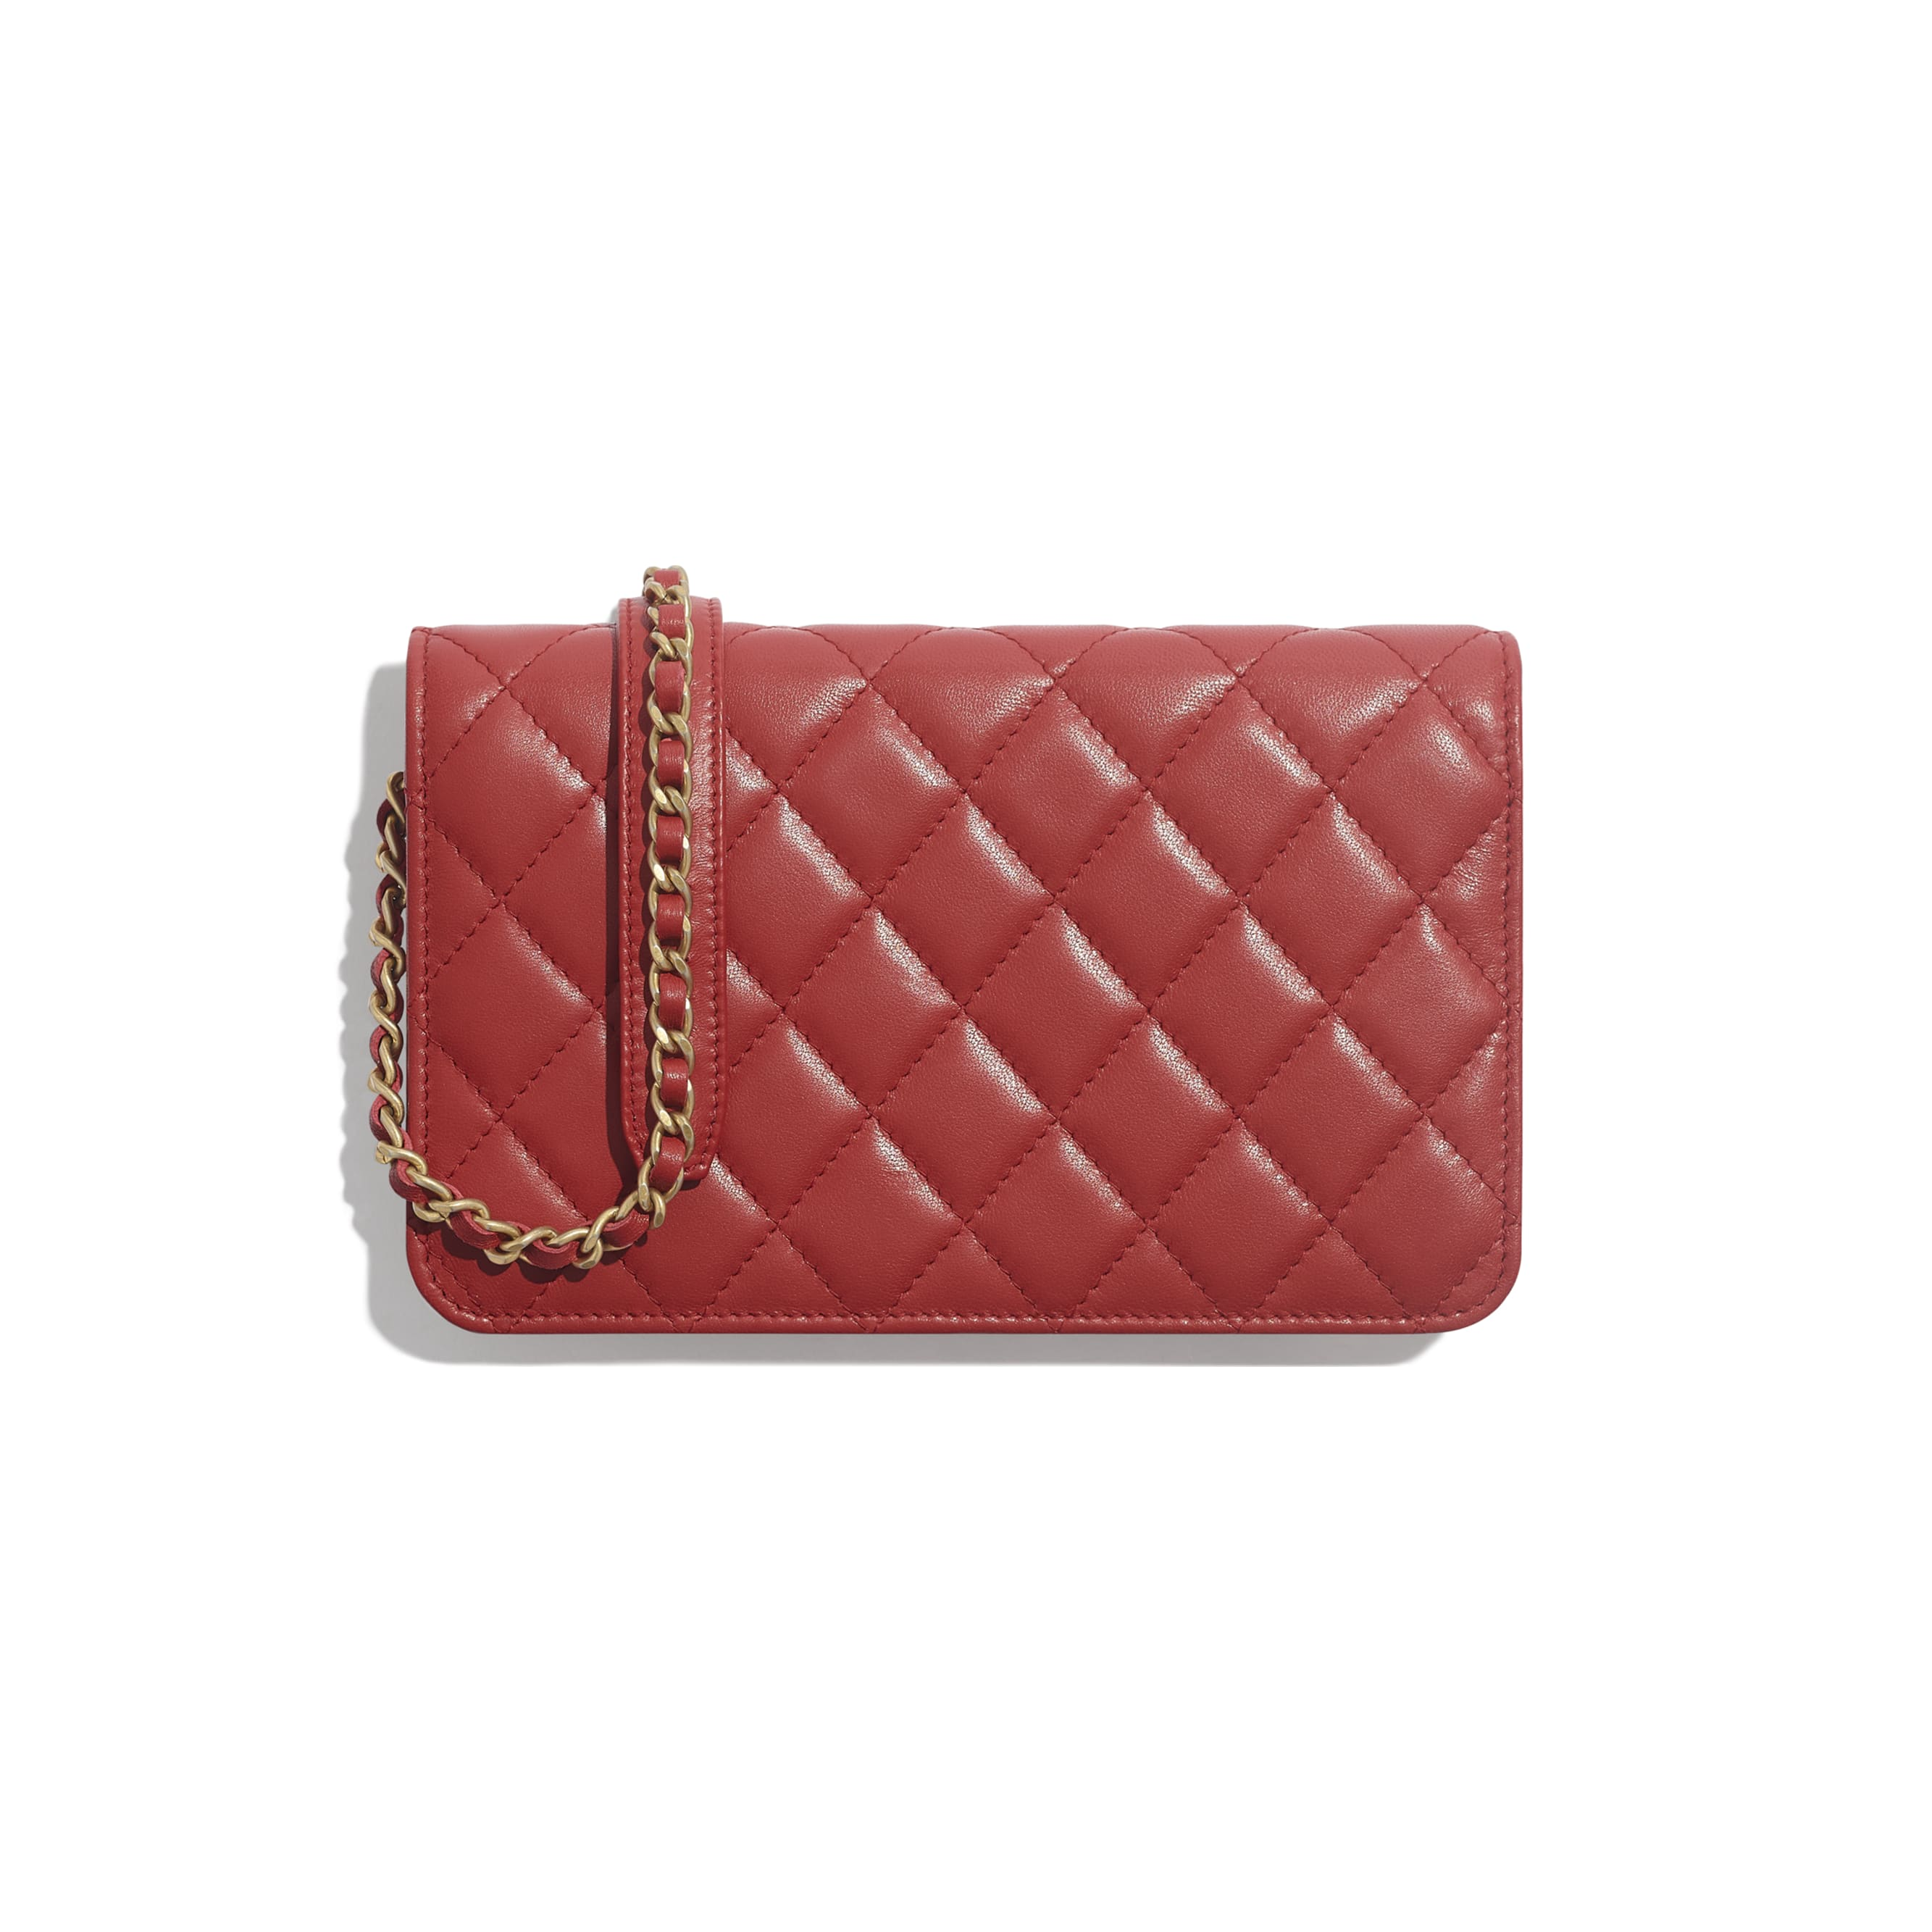 Wallet on Chain - Red - Lambskin & Gold-Tone Metal - Alternative view - see standard sized version